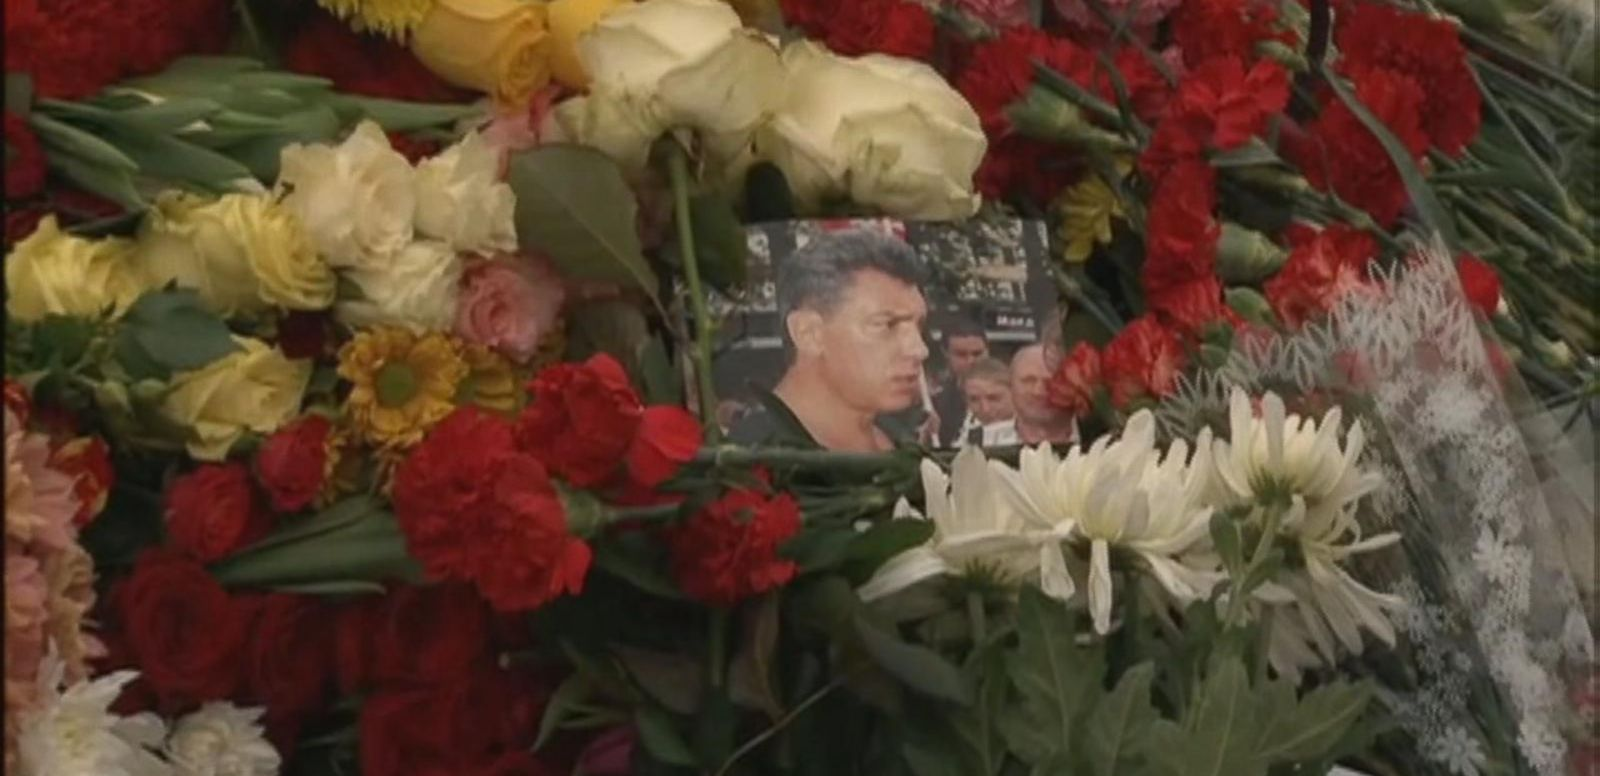 VIDEO: Boris Nemtsov Was Killed in High-Security Area